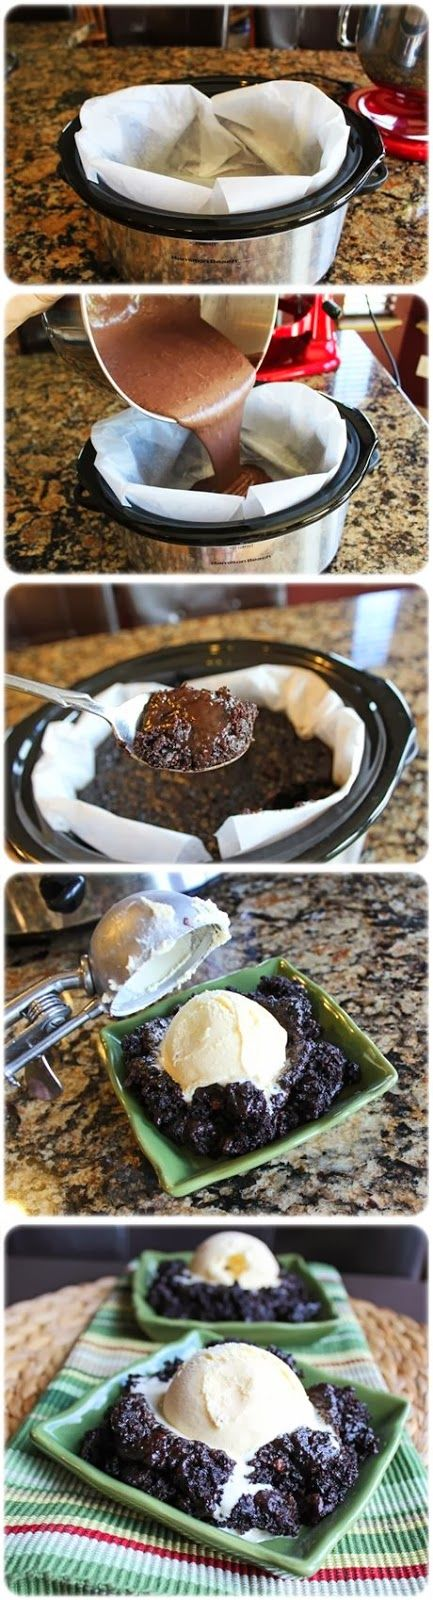 How To Chocolate Lava Cake